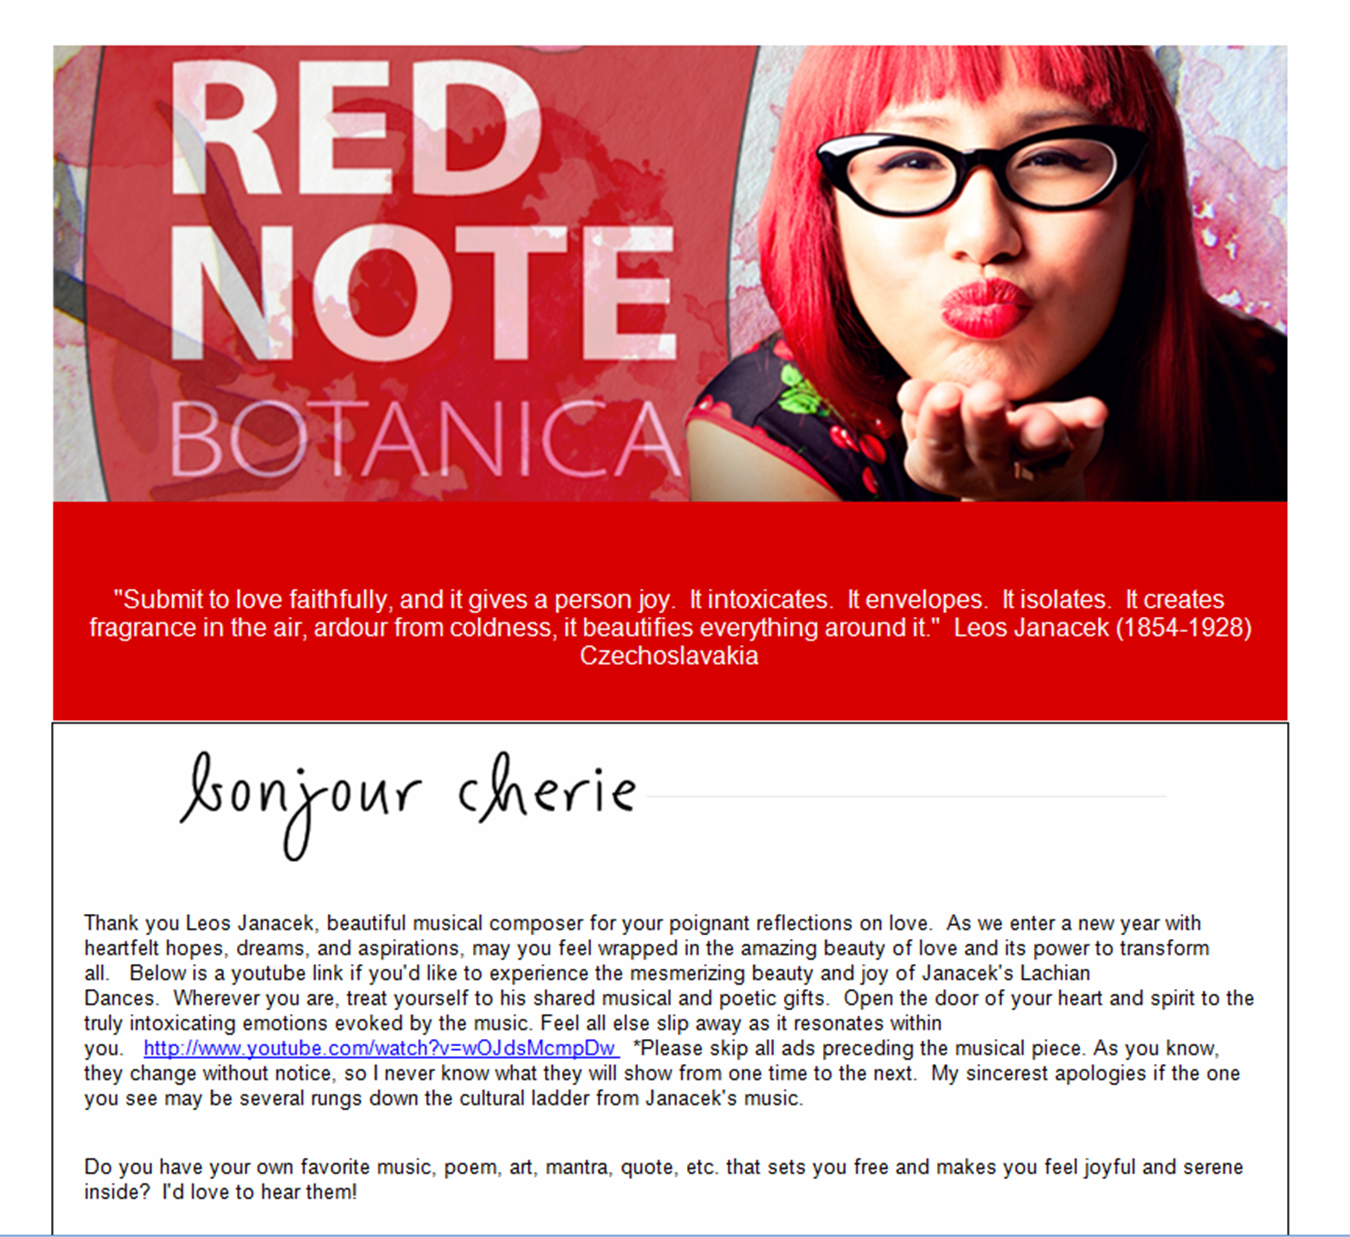 Red Note Botanica Enewsletter Template Design Constant Contact